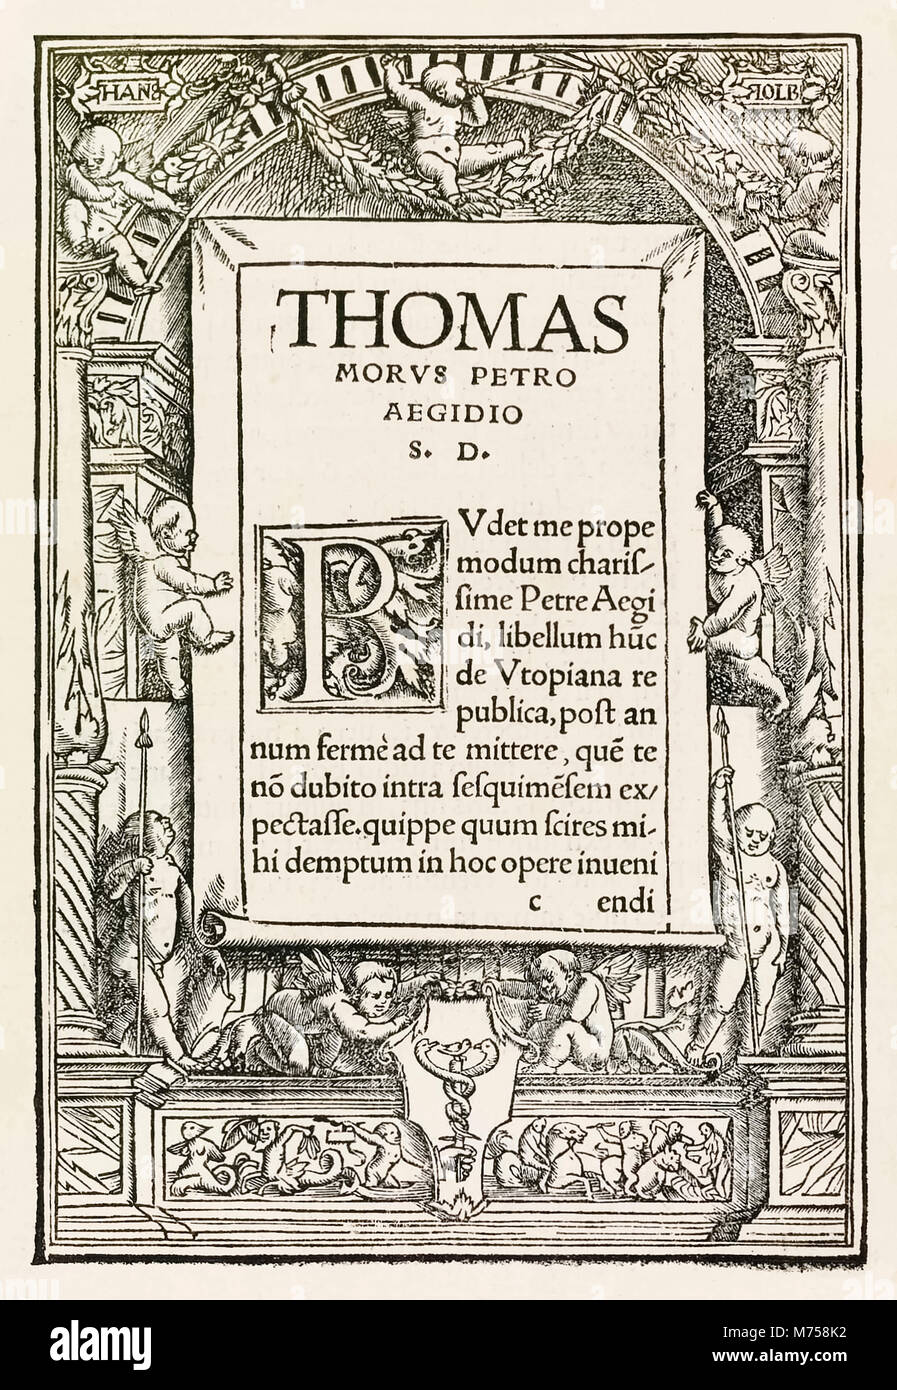 Dedication page from the 1518 Basel third edition of 'Utopia' by Sir Thomas More (1478–1535) first published in - Stock Image